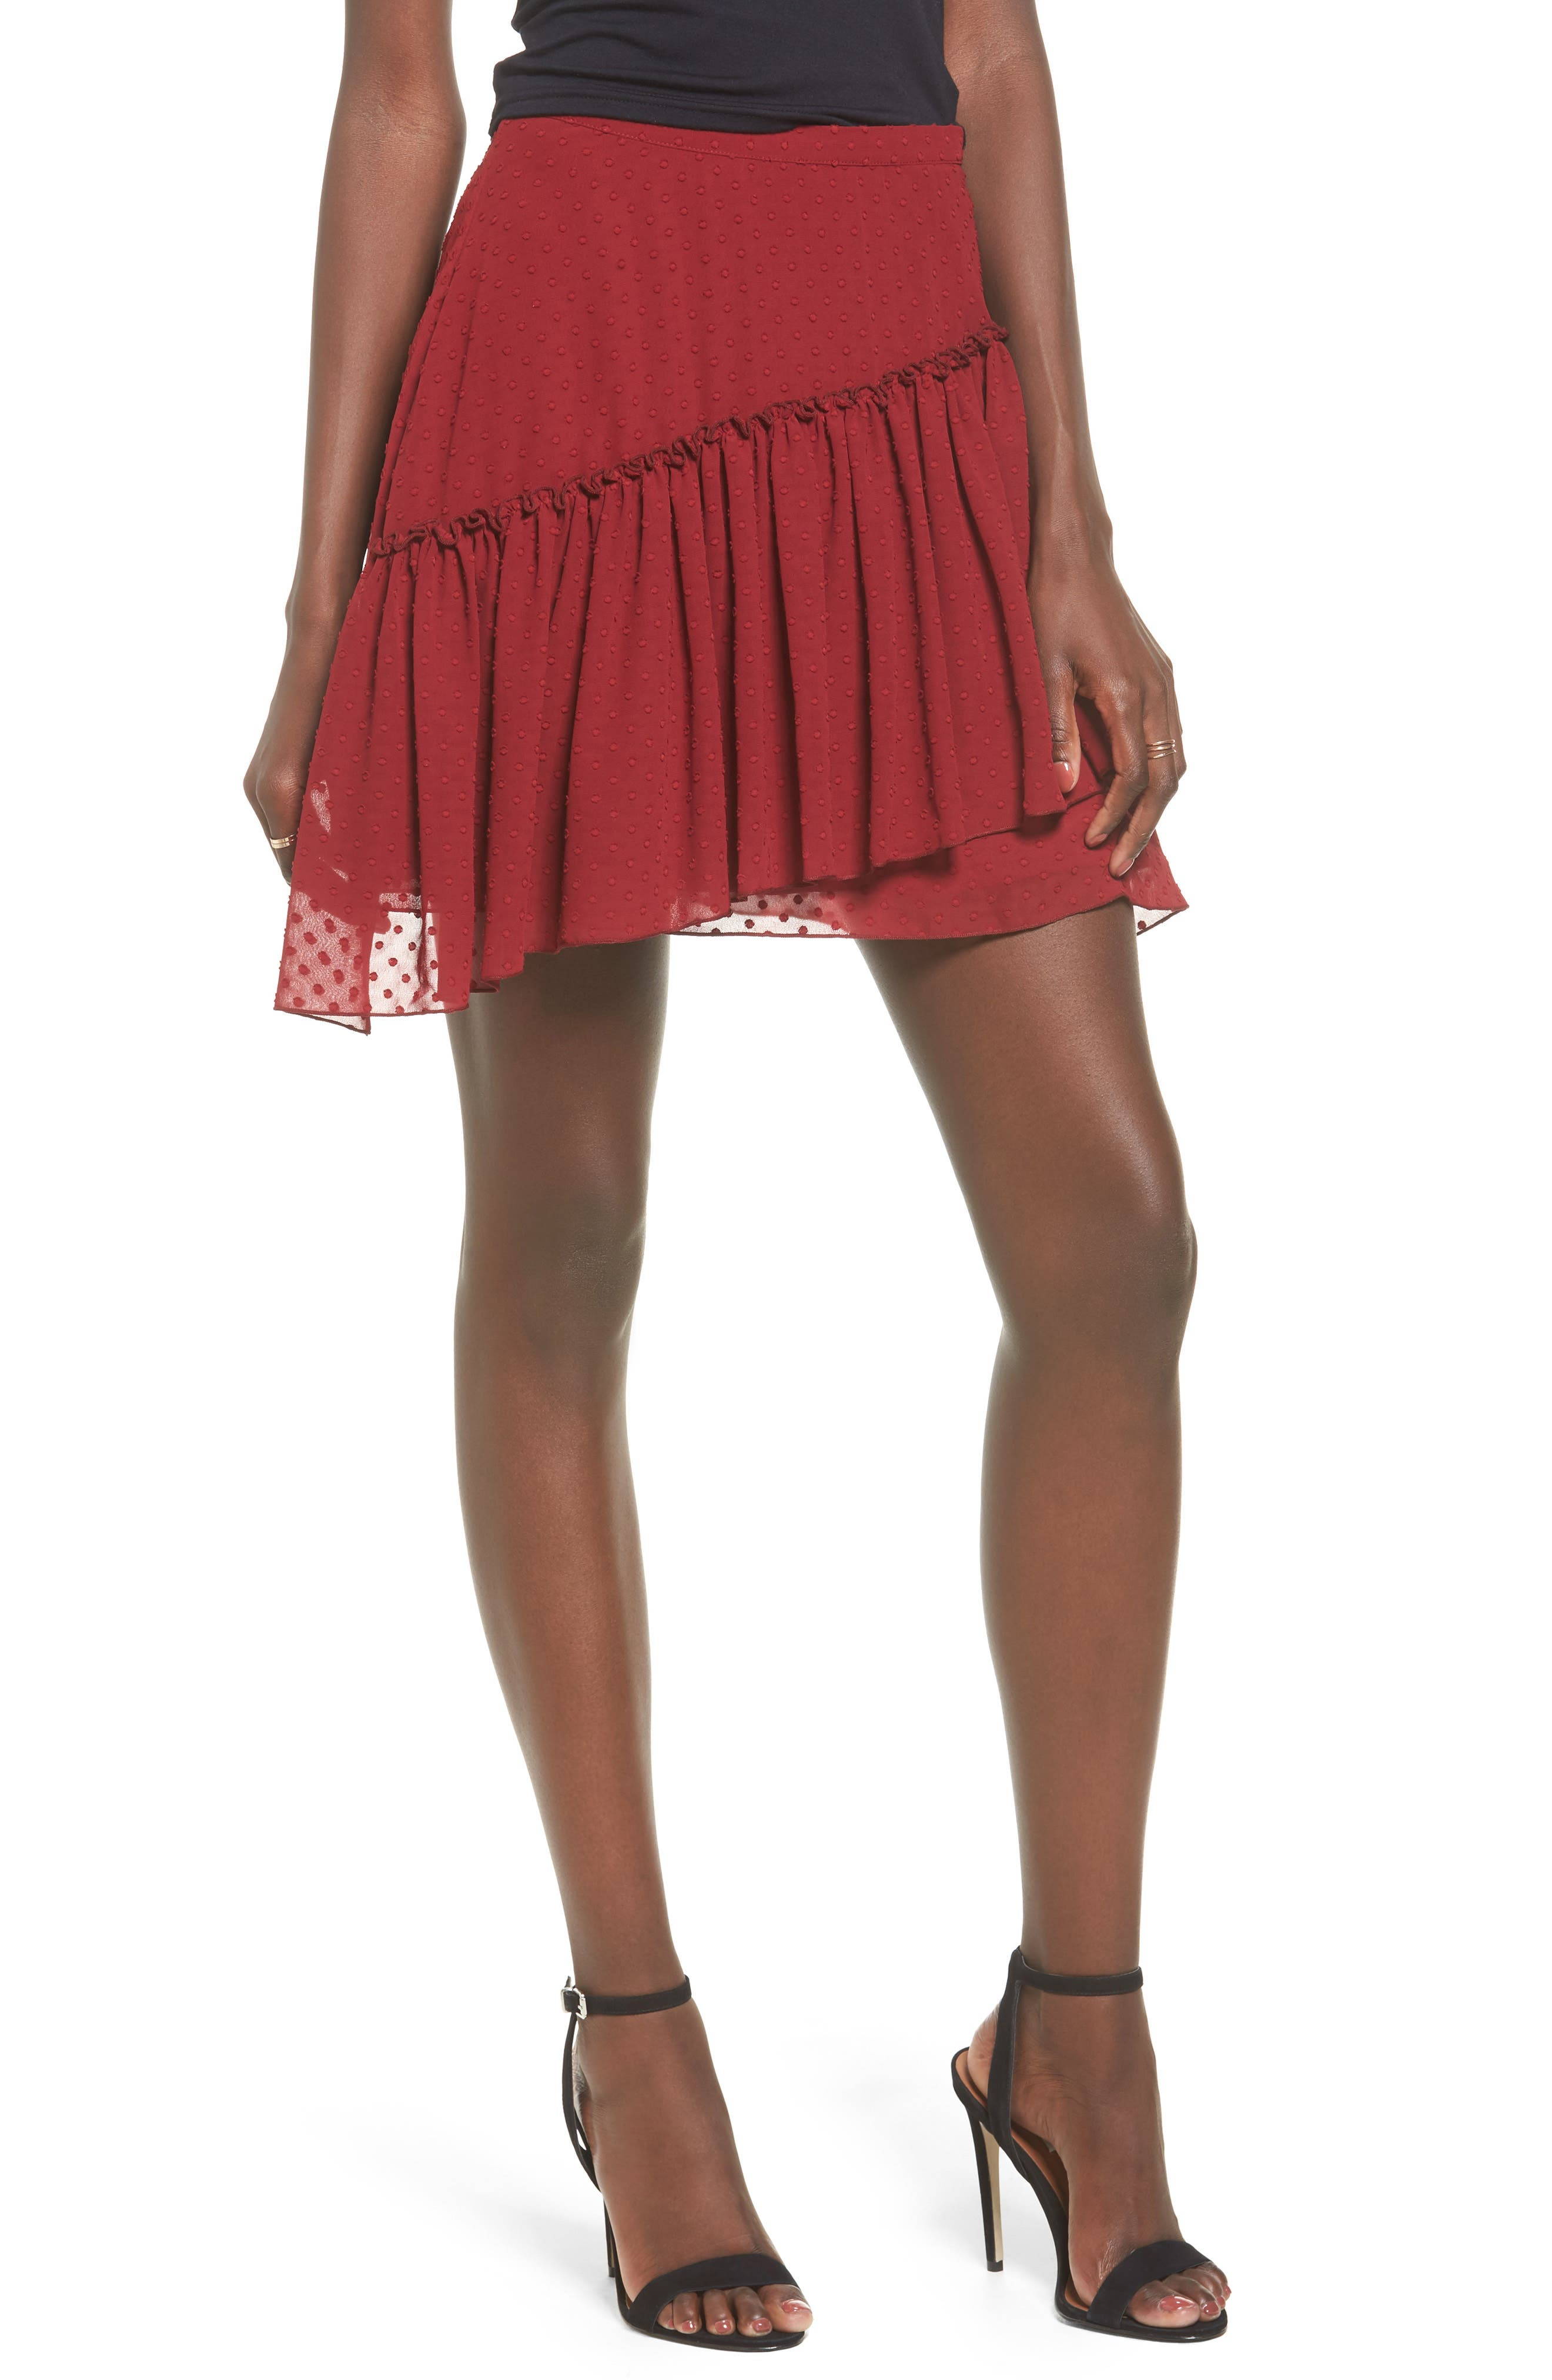 Alternate Image 1 Selected - The Fifth Label Swiss Dot Ruffle Skirt